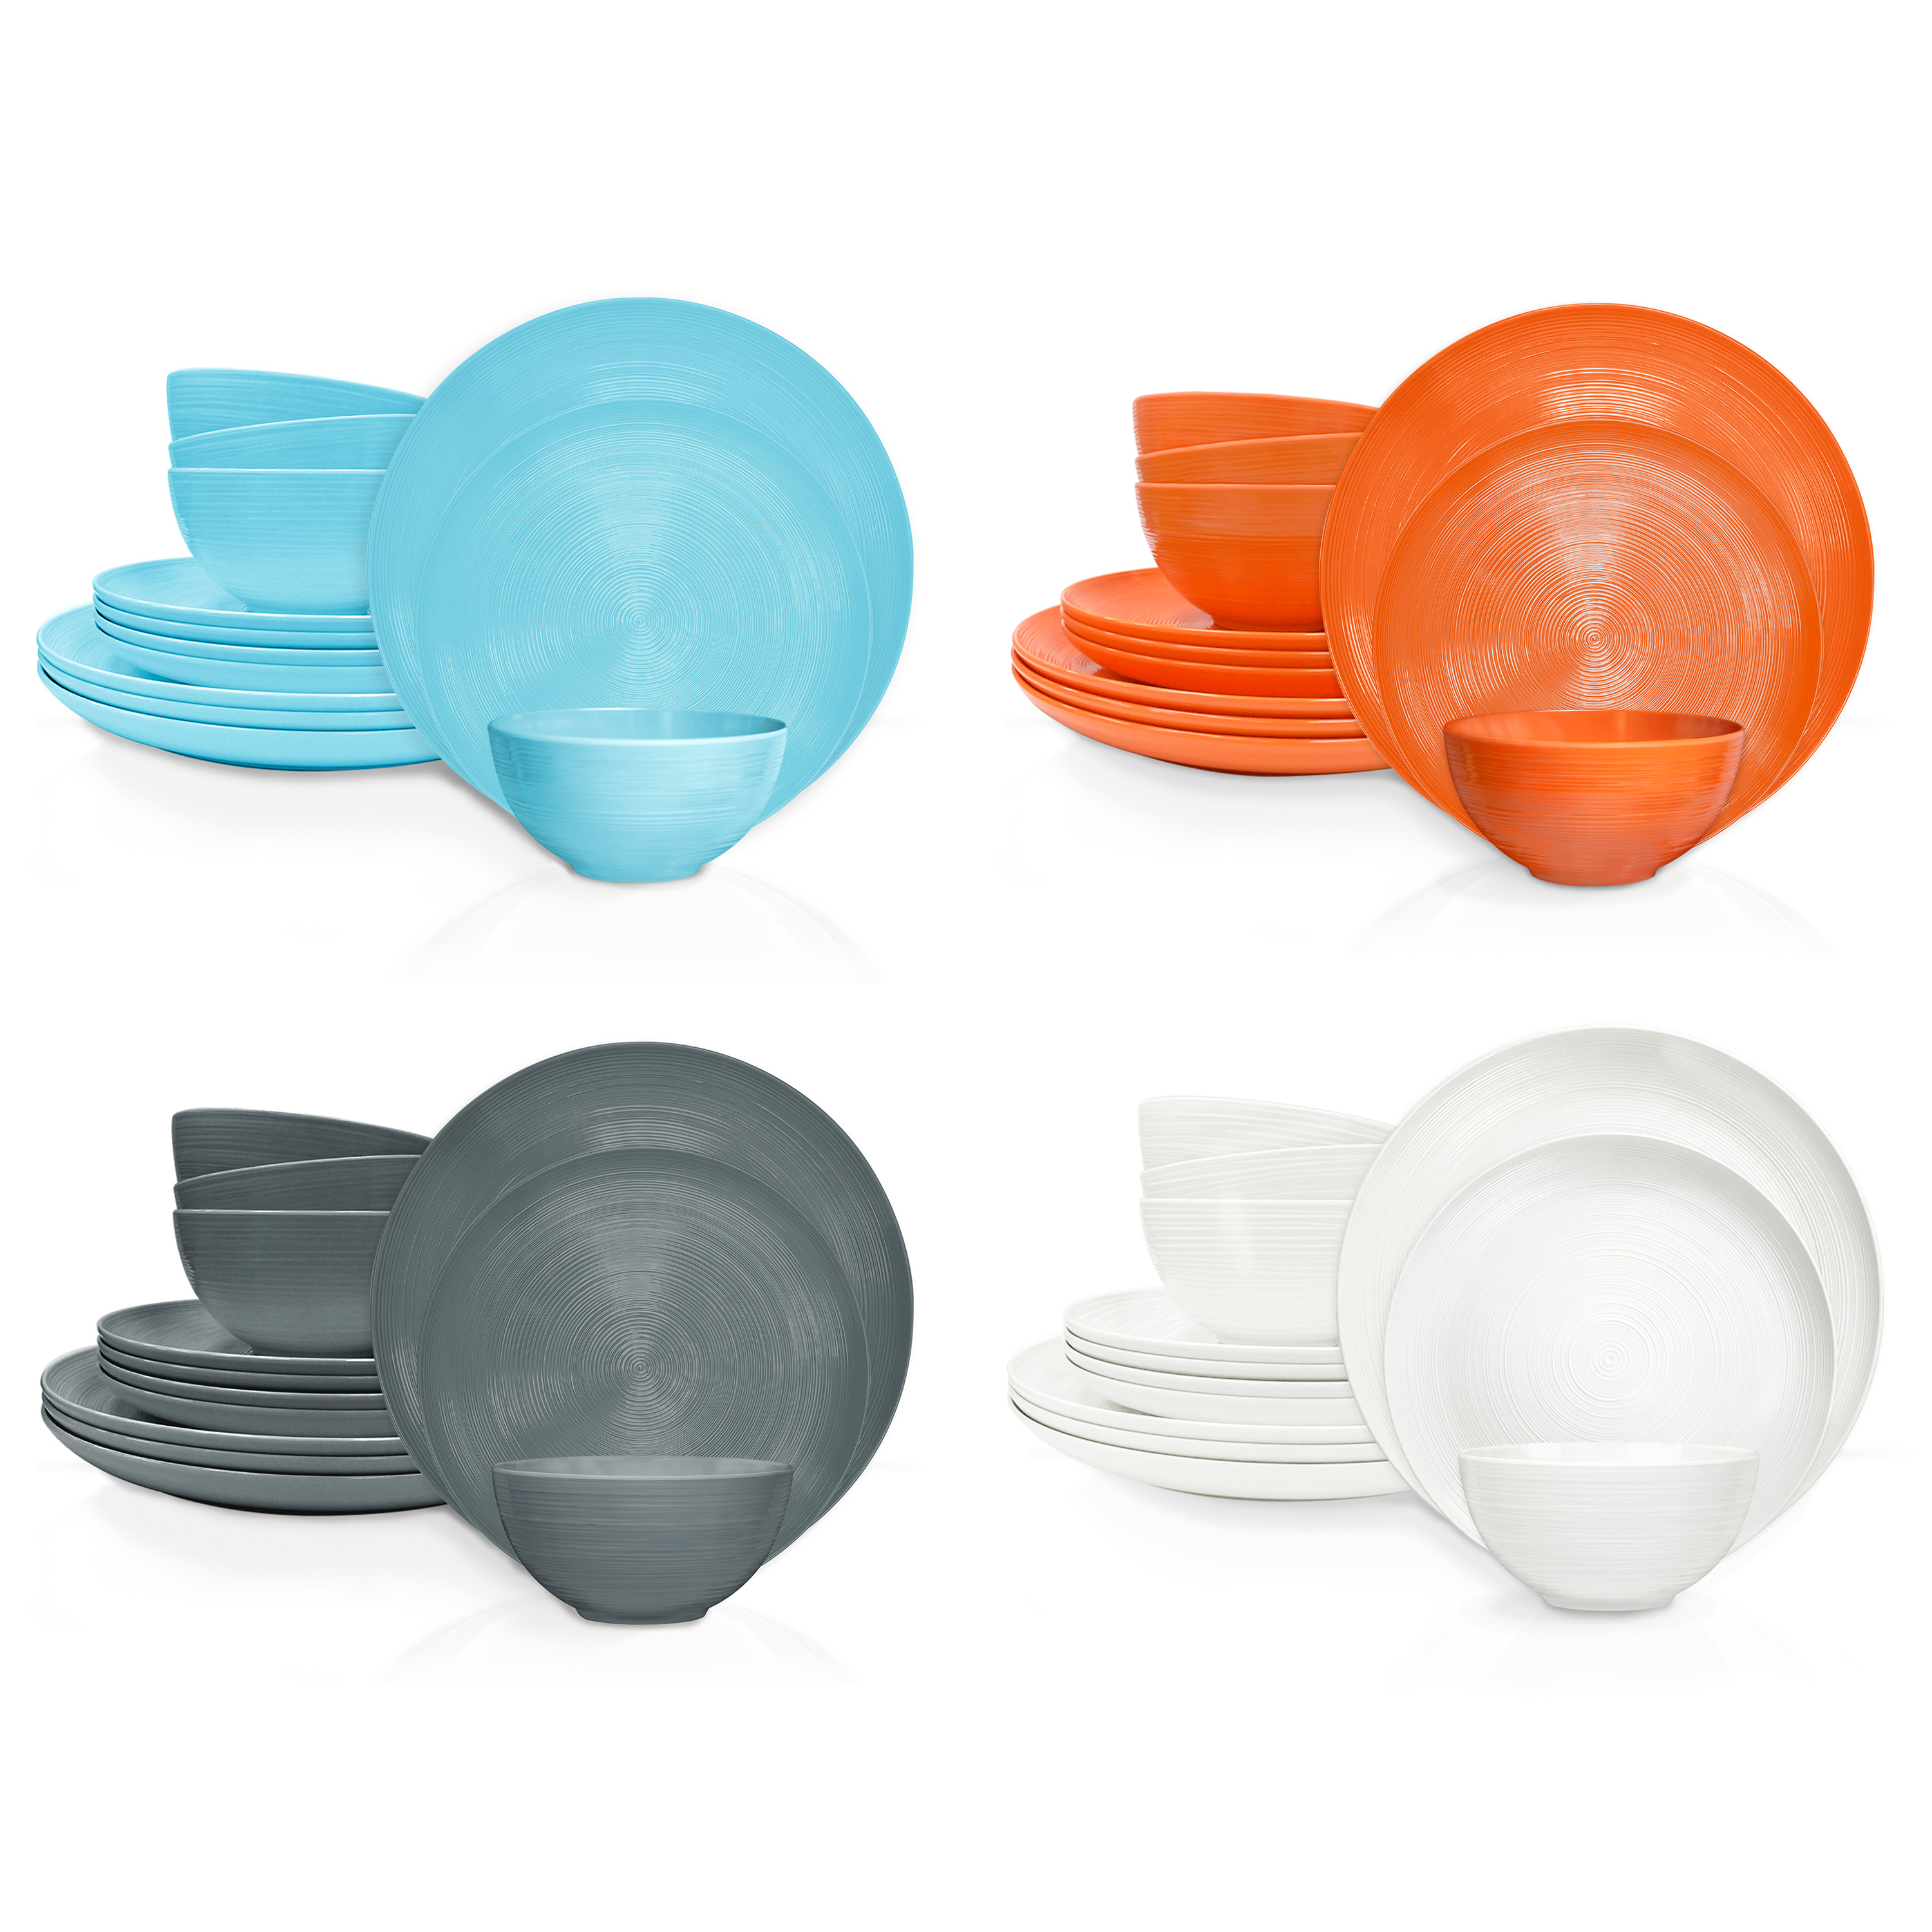 American Conventional Plate & Bowl Sets, White, 12-piece set slideshow image 12